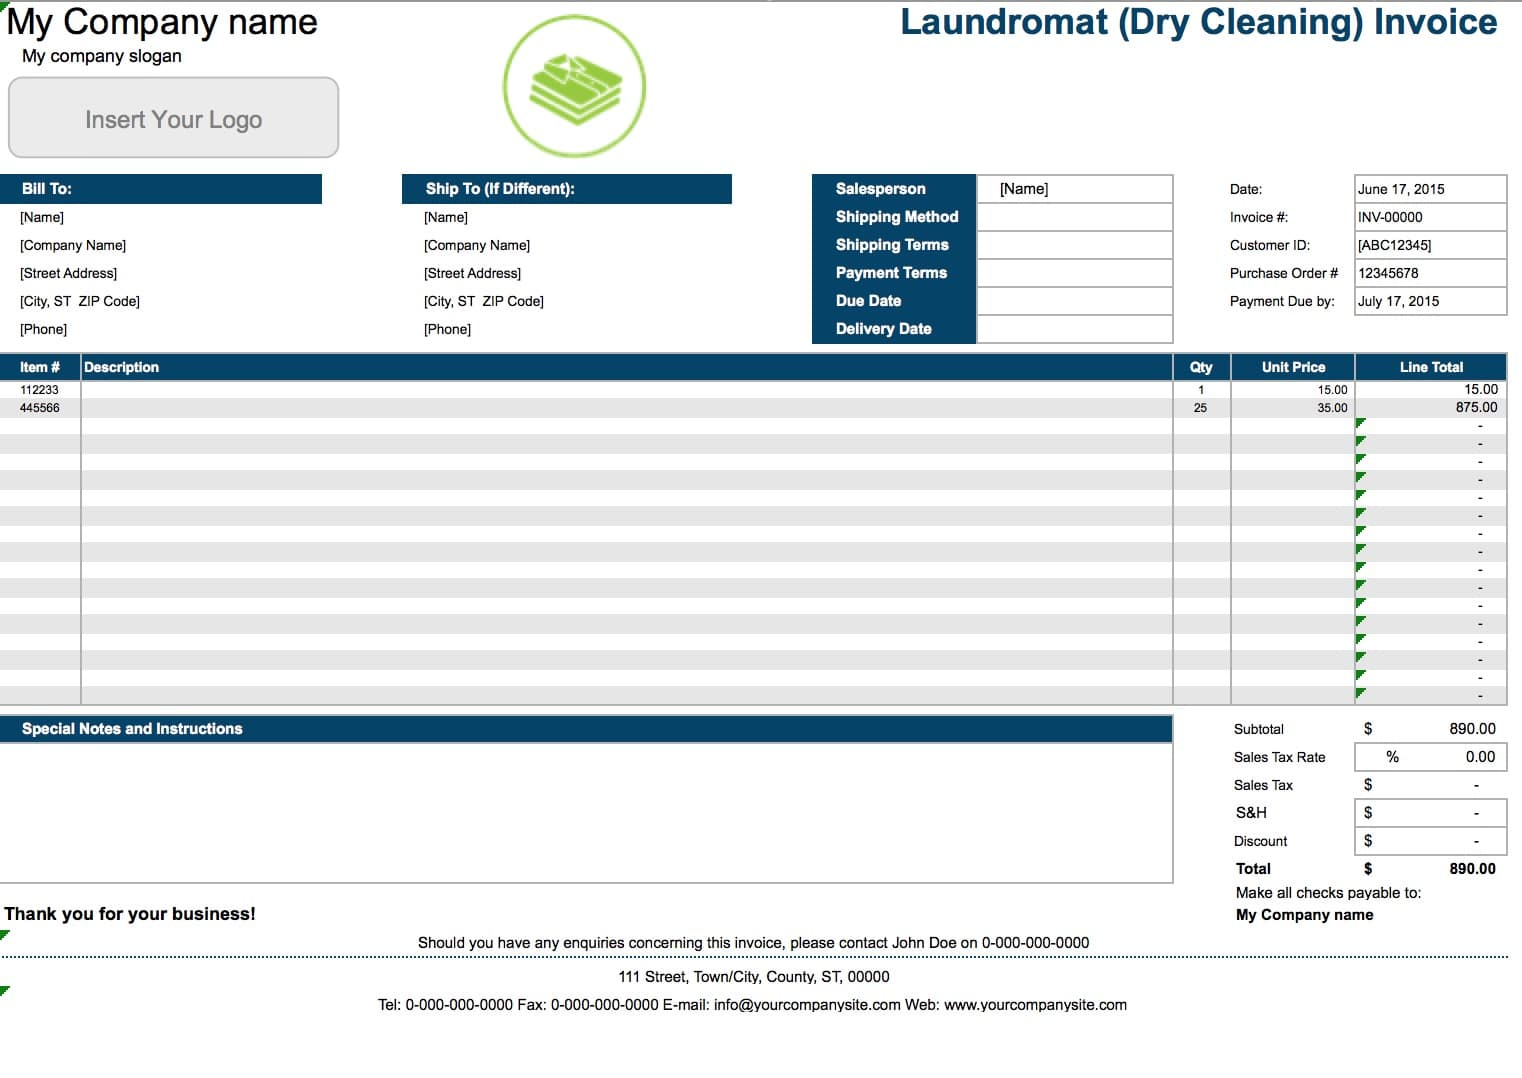 Free Laundromat Dry Cleaning Invoice Template Excel PDF - Sales invoice template excel free download